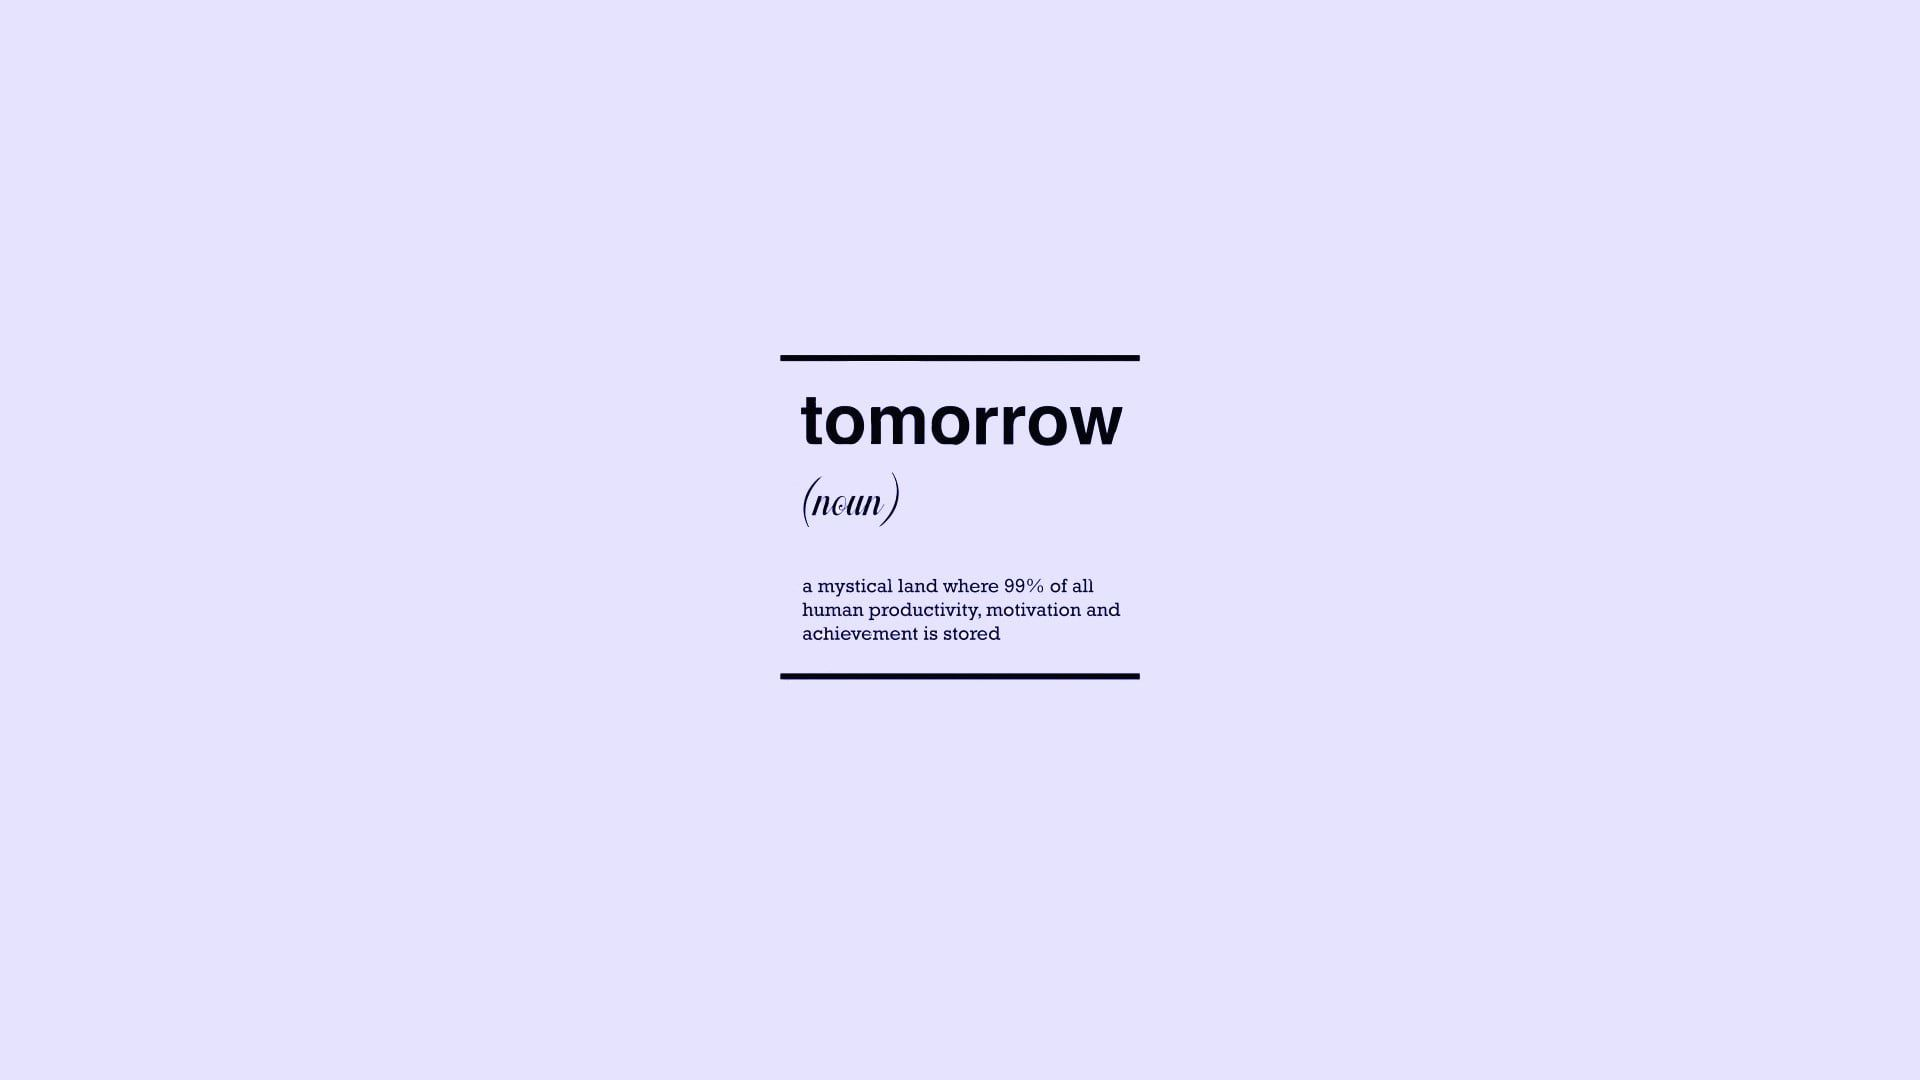 Tomorrow Text Overlay Tomorrow Text Simple White Background Typography T In 2020 Laptop Wallpaper Aesthetic Desktop Wallpaper Computer Wallpaper Desktop Wallpapers